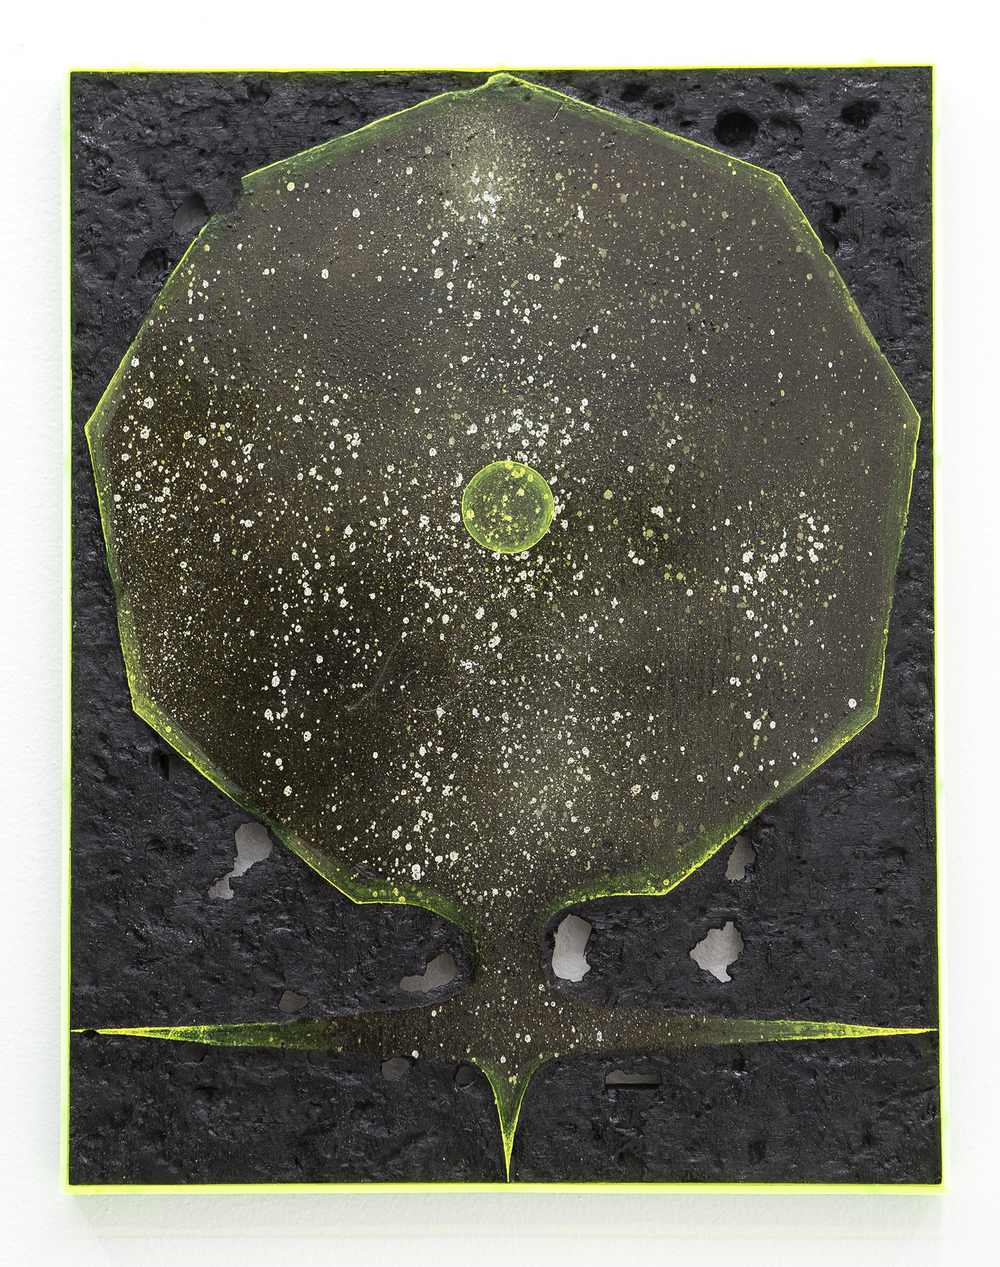 Black shape #2, 2016, spray paint, pigment, burns, varnish, oil paint on wood, plexiglass, 18x14 inches